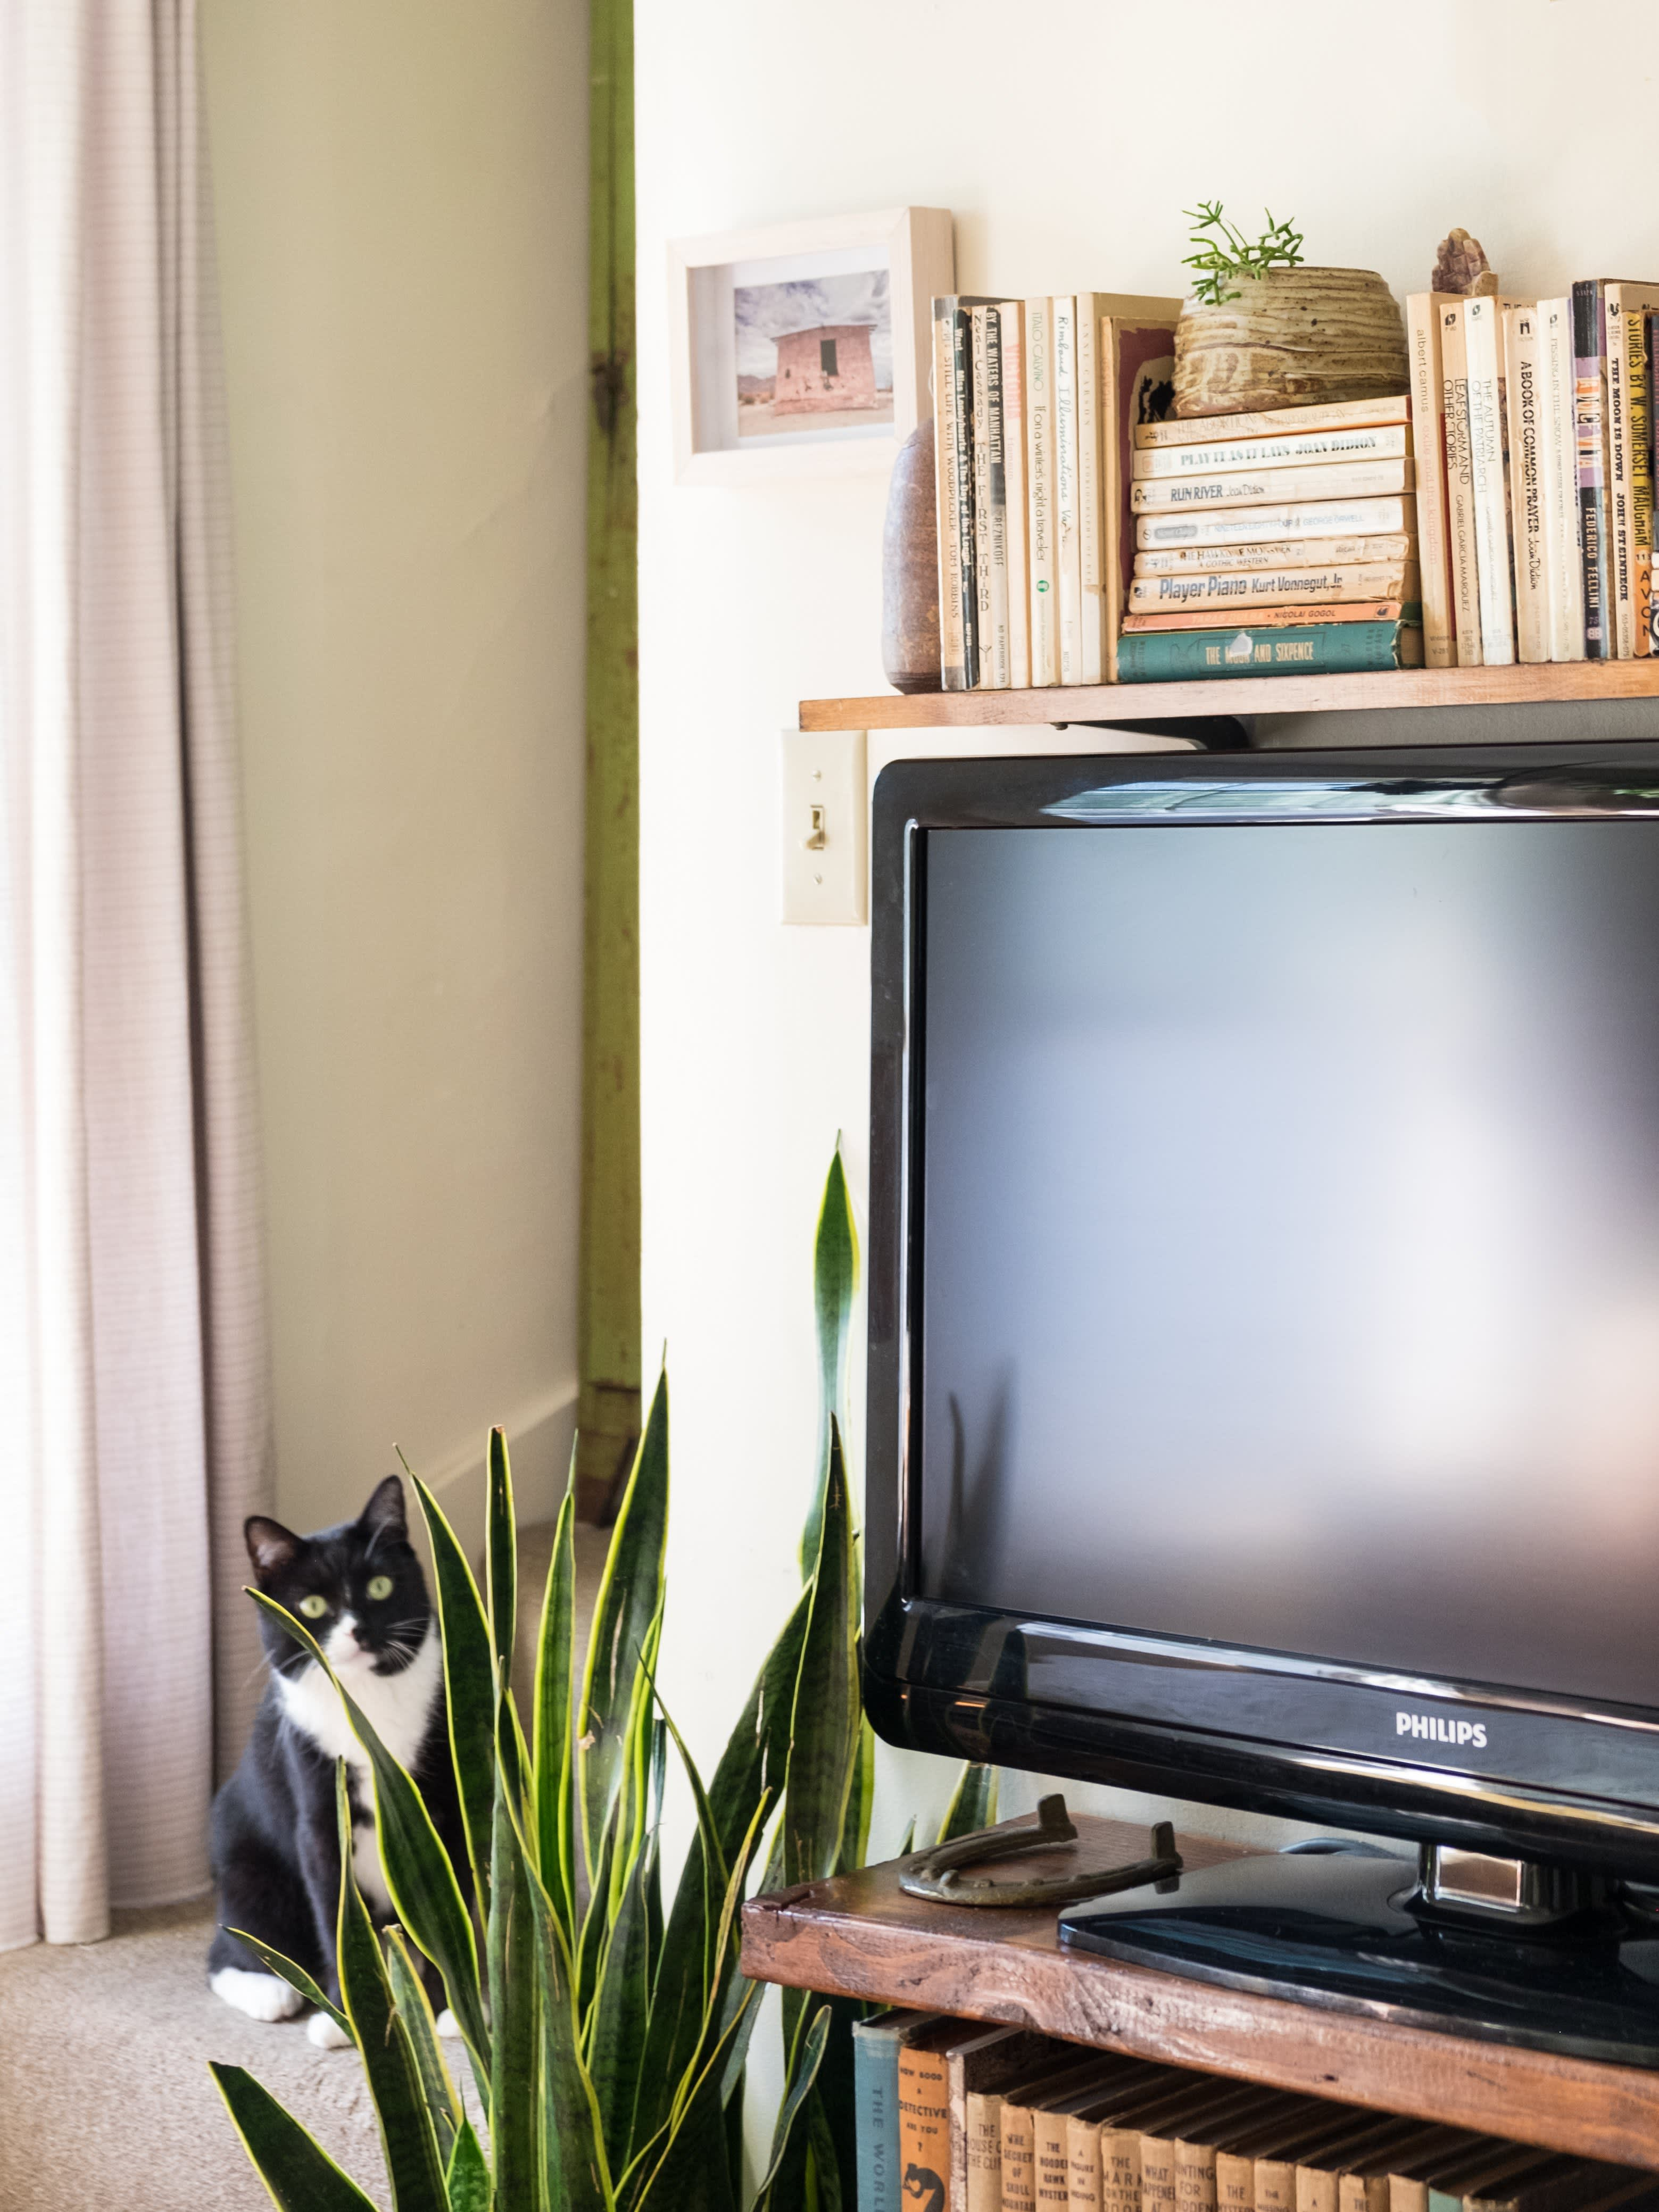 House Tour: An Apartment With a Chill 1970s Feel | Apartment